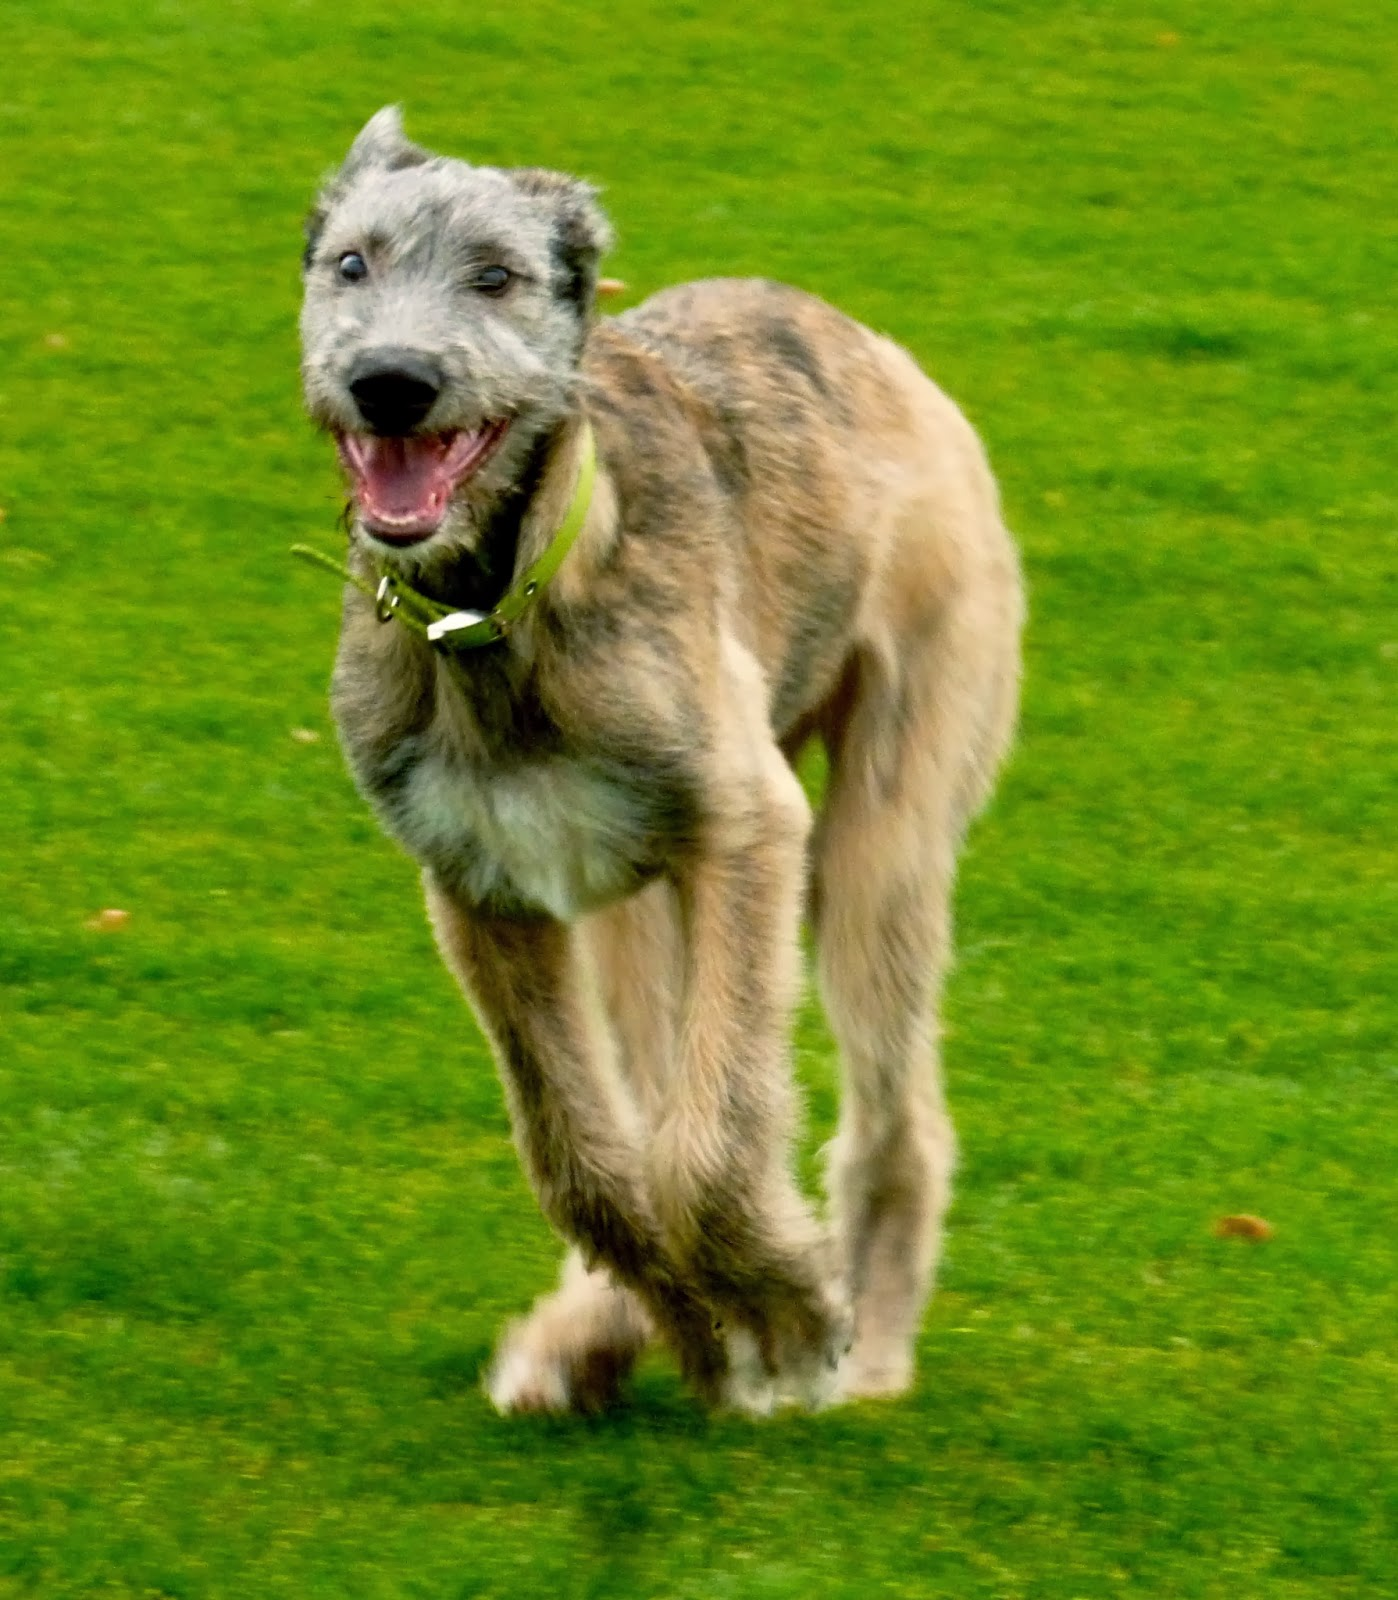 Poet Red Shuttleworth Peaches Irish Wolfhound Poetry Puppy On